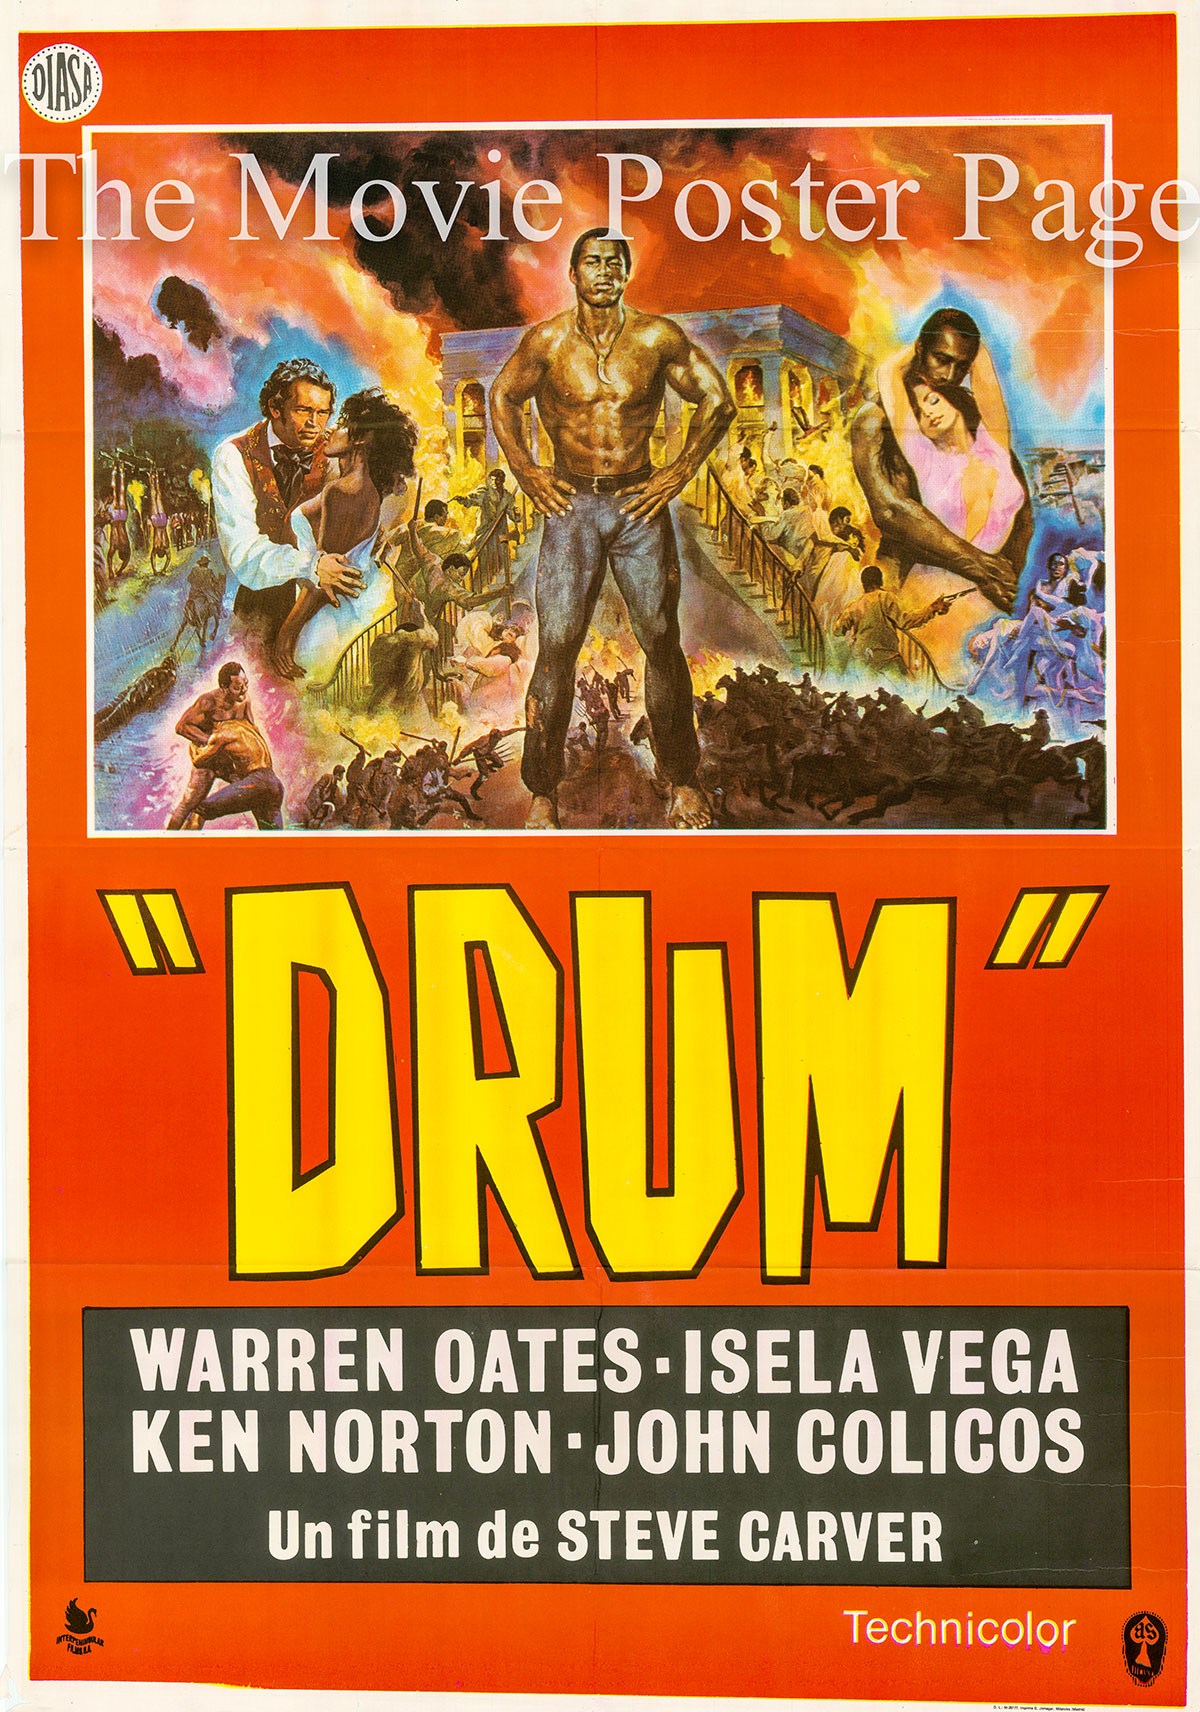 Pictured is a Spanish promotional poster for the 1976 Steve Carver film Drum starring Warren Oates.